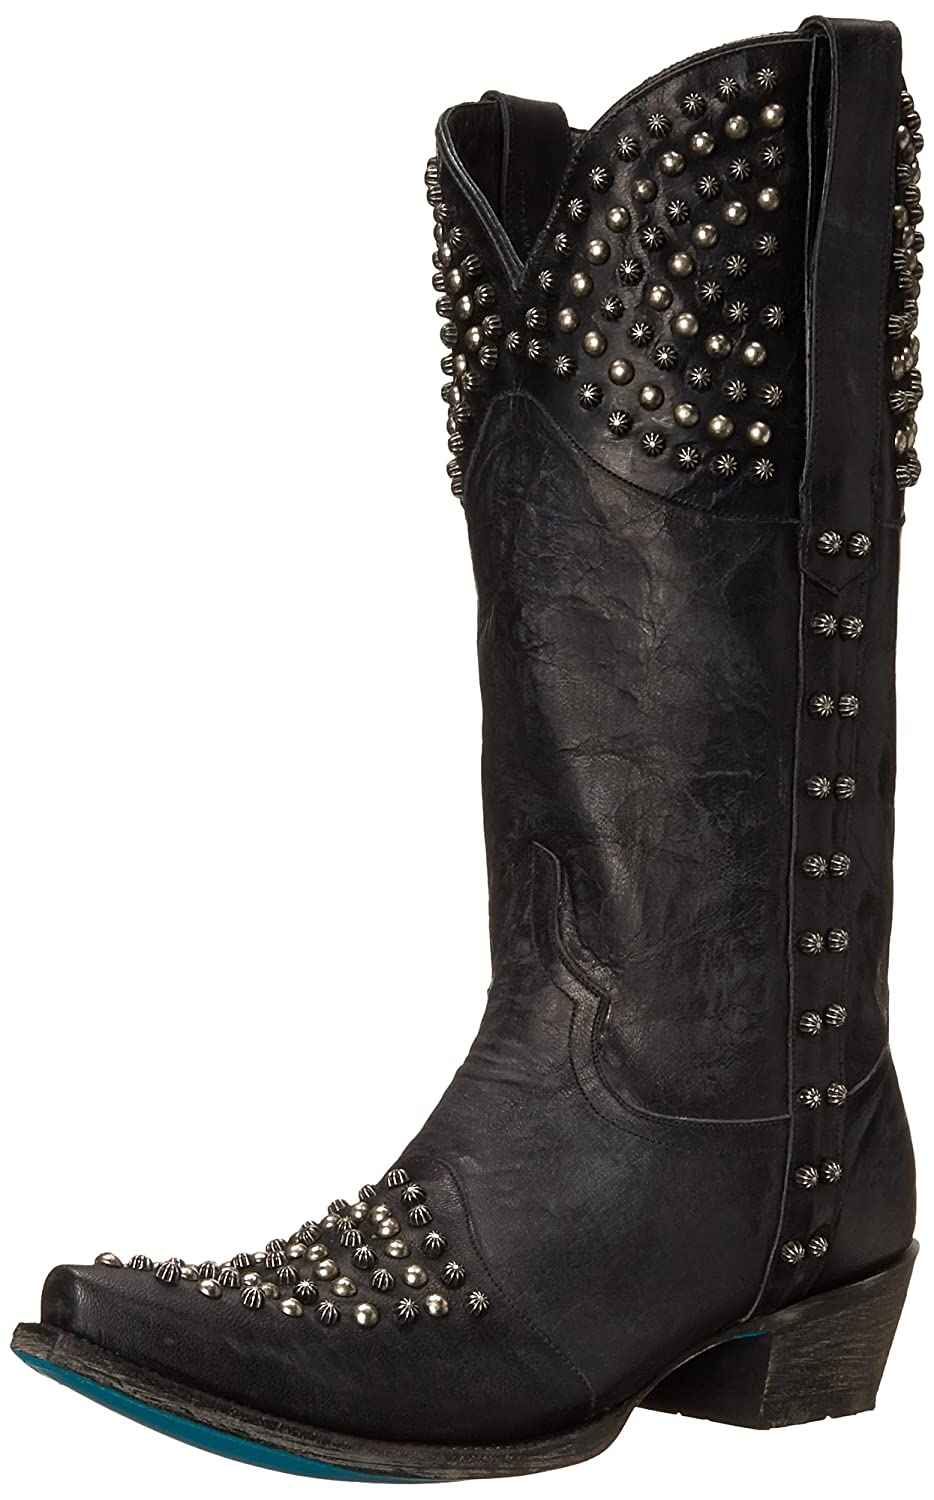 Lane Boots Women's Rock On Western Boot B00KWI552S 10.5 B(M) US|Black